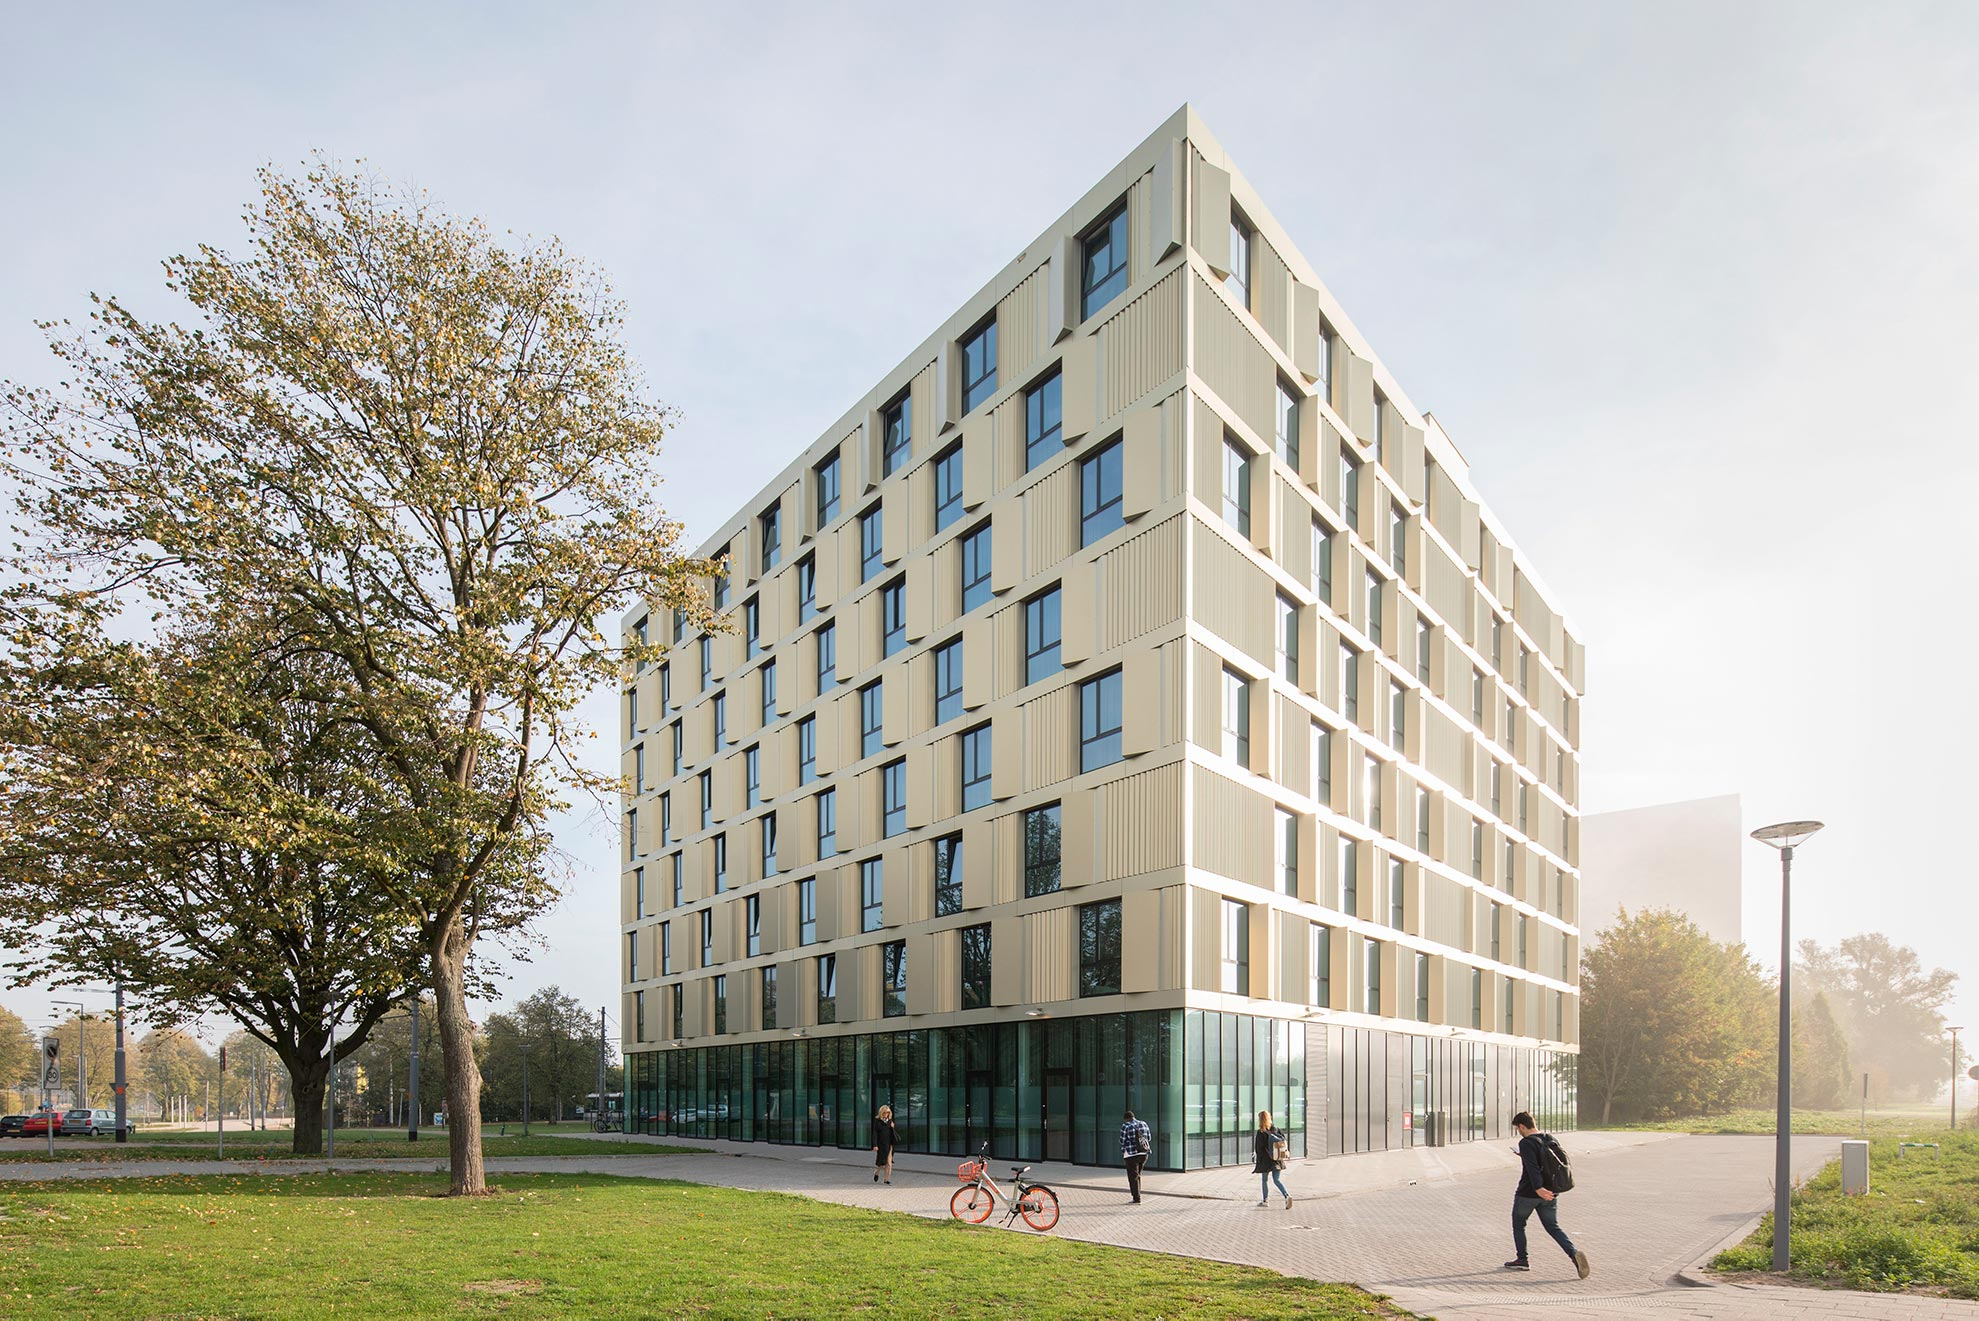 Erasmus-Campus-Student-Housing-by-mecanoo-architecten-1_1591882038.jpg